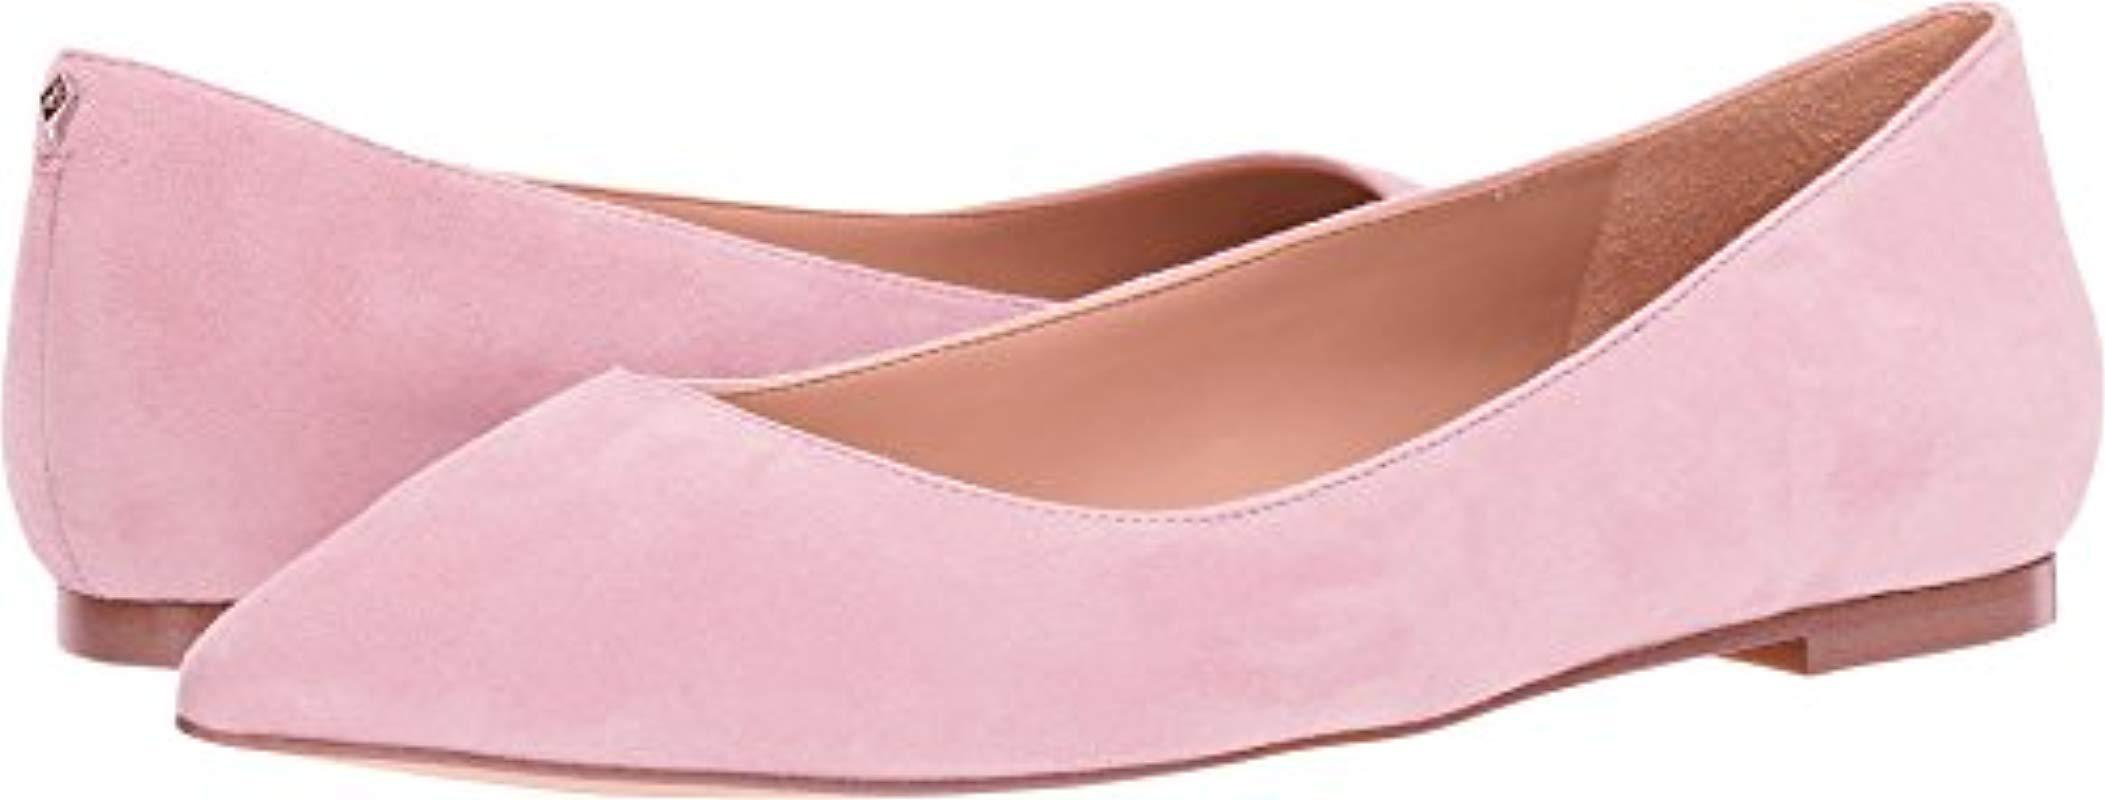 c5782a333de3 Lyst - Sam Edelman Rae Pointed Toe Flat in Pink - Save 4%